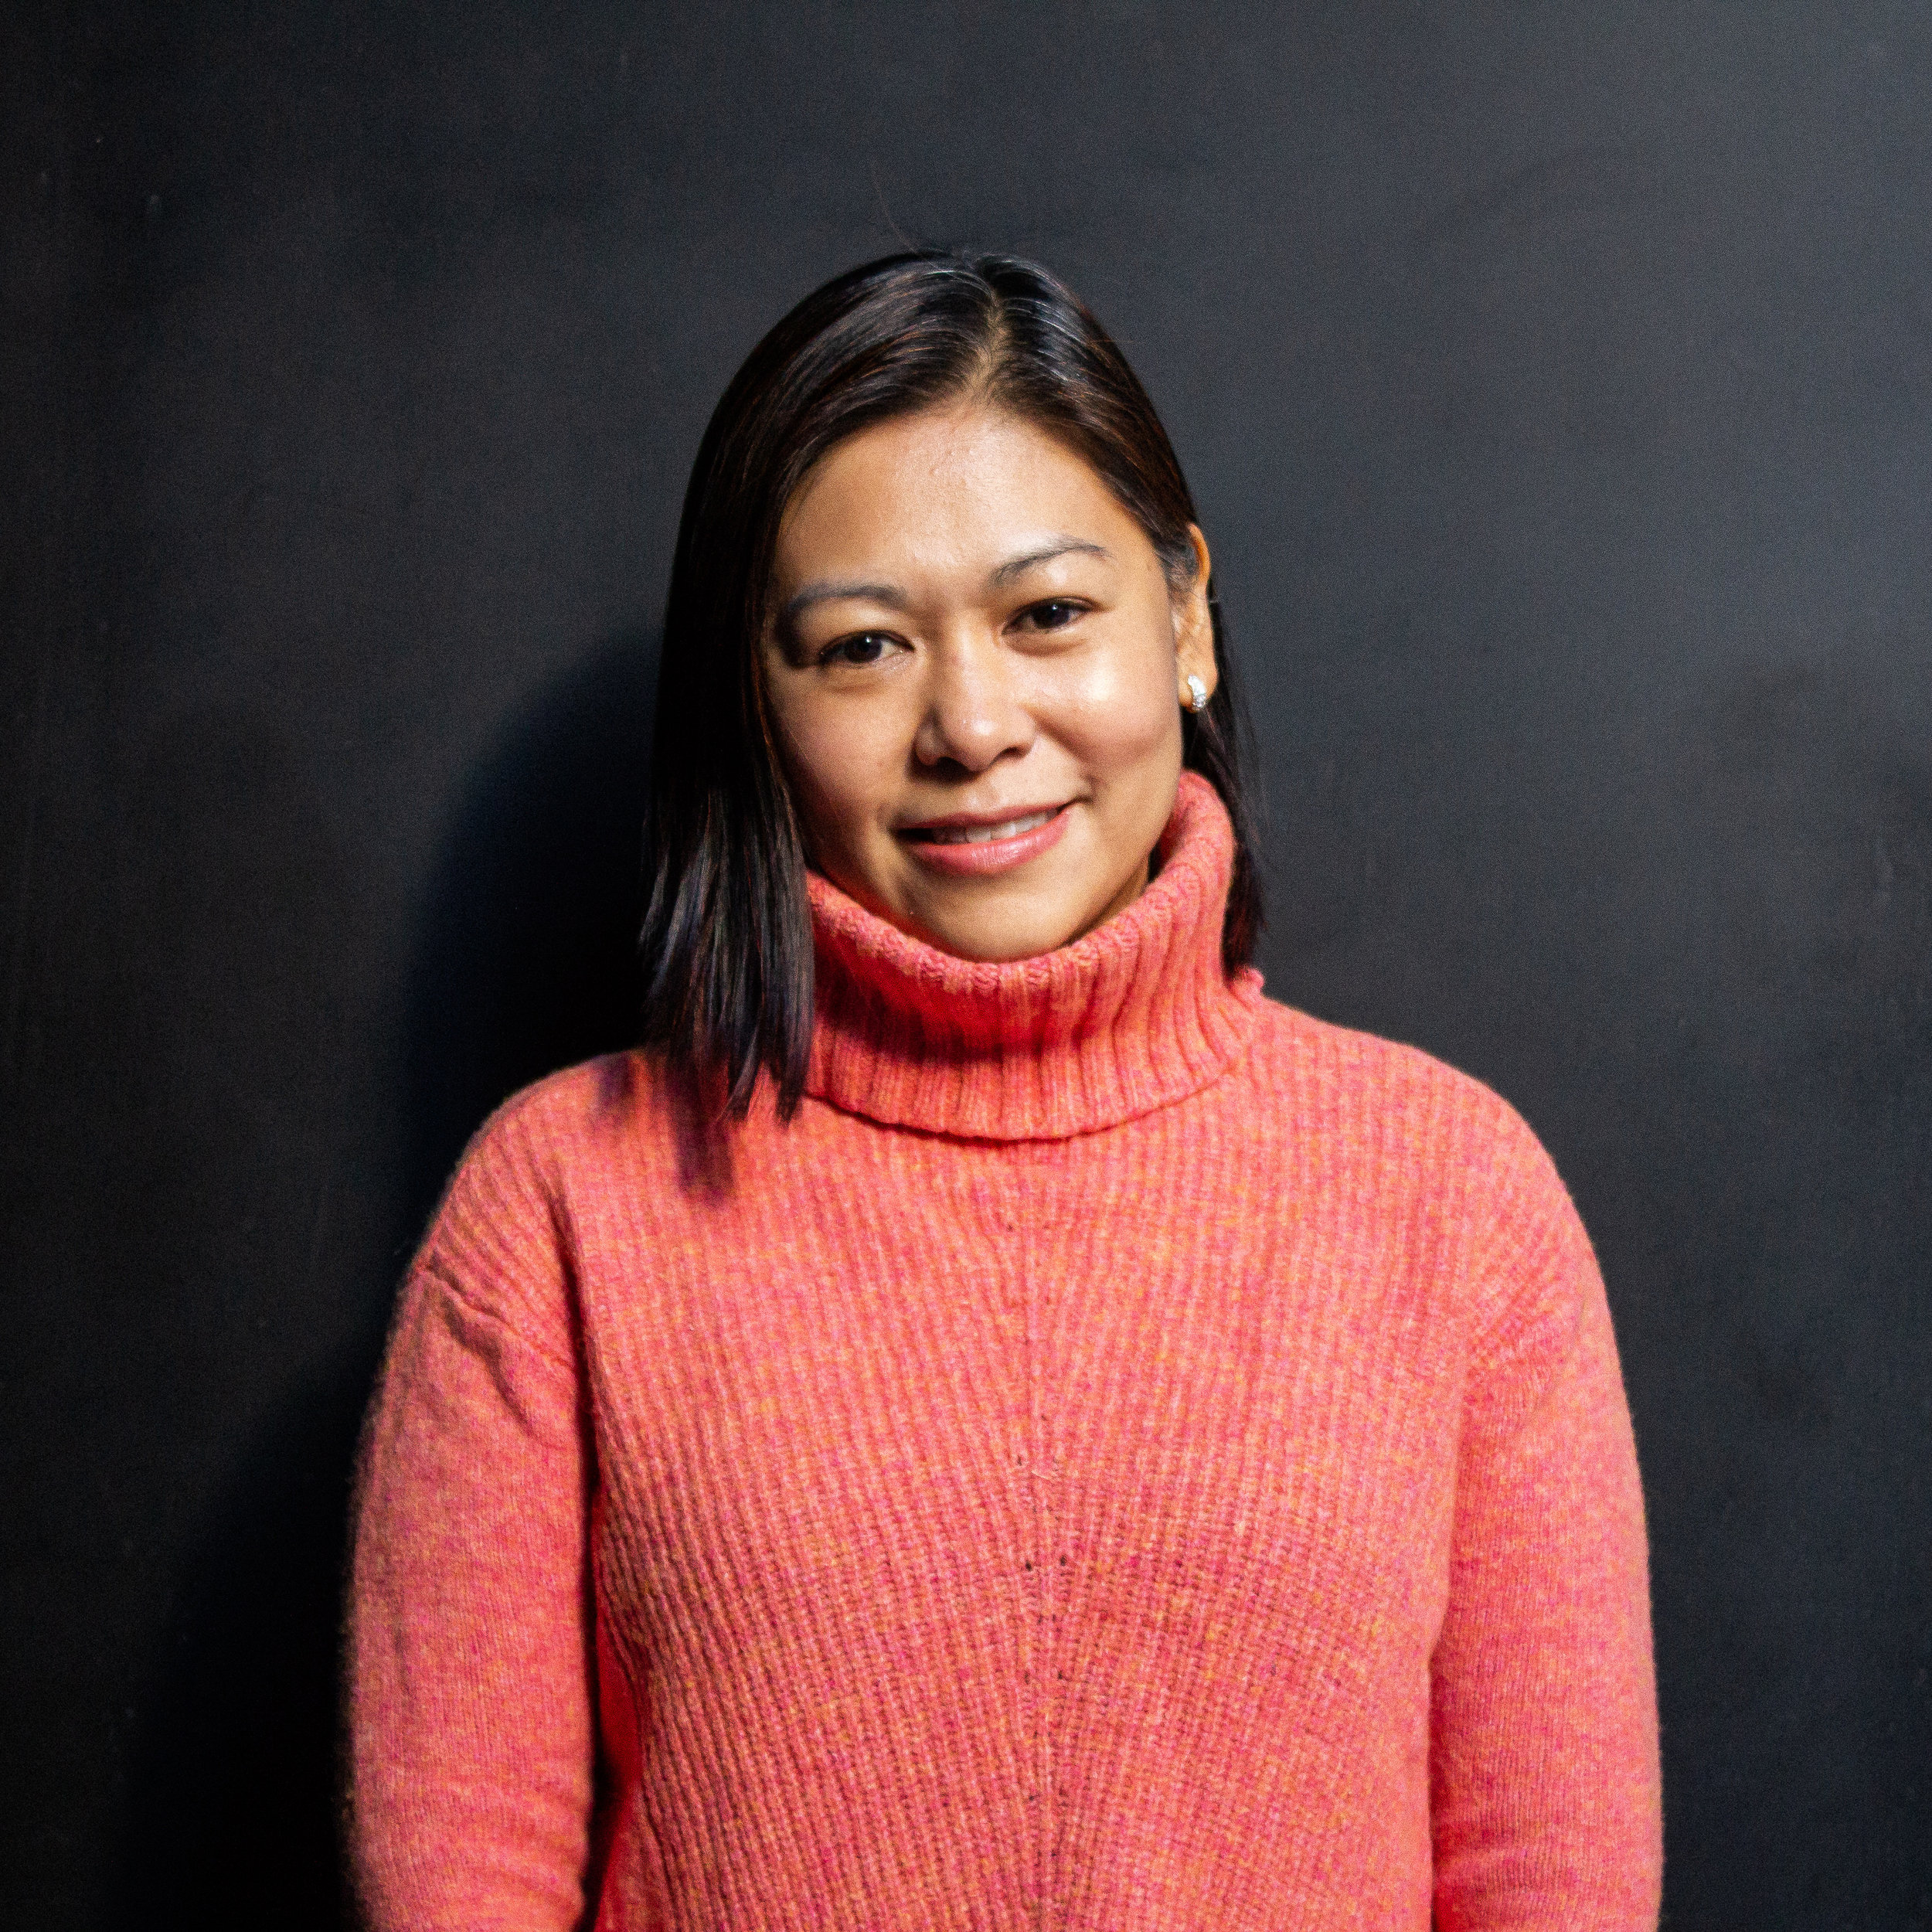 WINNIE LEE - ADMINISTRATIVE ASSISTANT_______Originally from Hong Kong, Winnie and her husband moved to New York in 2002 to start their business in the city. Winnie and her husband both live in midtown with their two children and their cat! They joined the Hope family in 2016!Winnie enjoys navigating city life as a parent, and loves exploring many cultural food options. Most of all, Winnie loves to get away with her family to some really quiet places.CONTACT